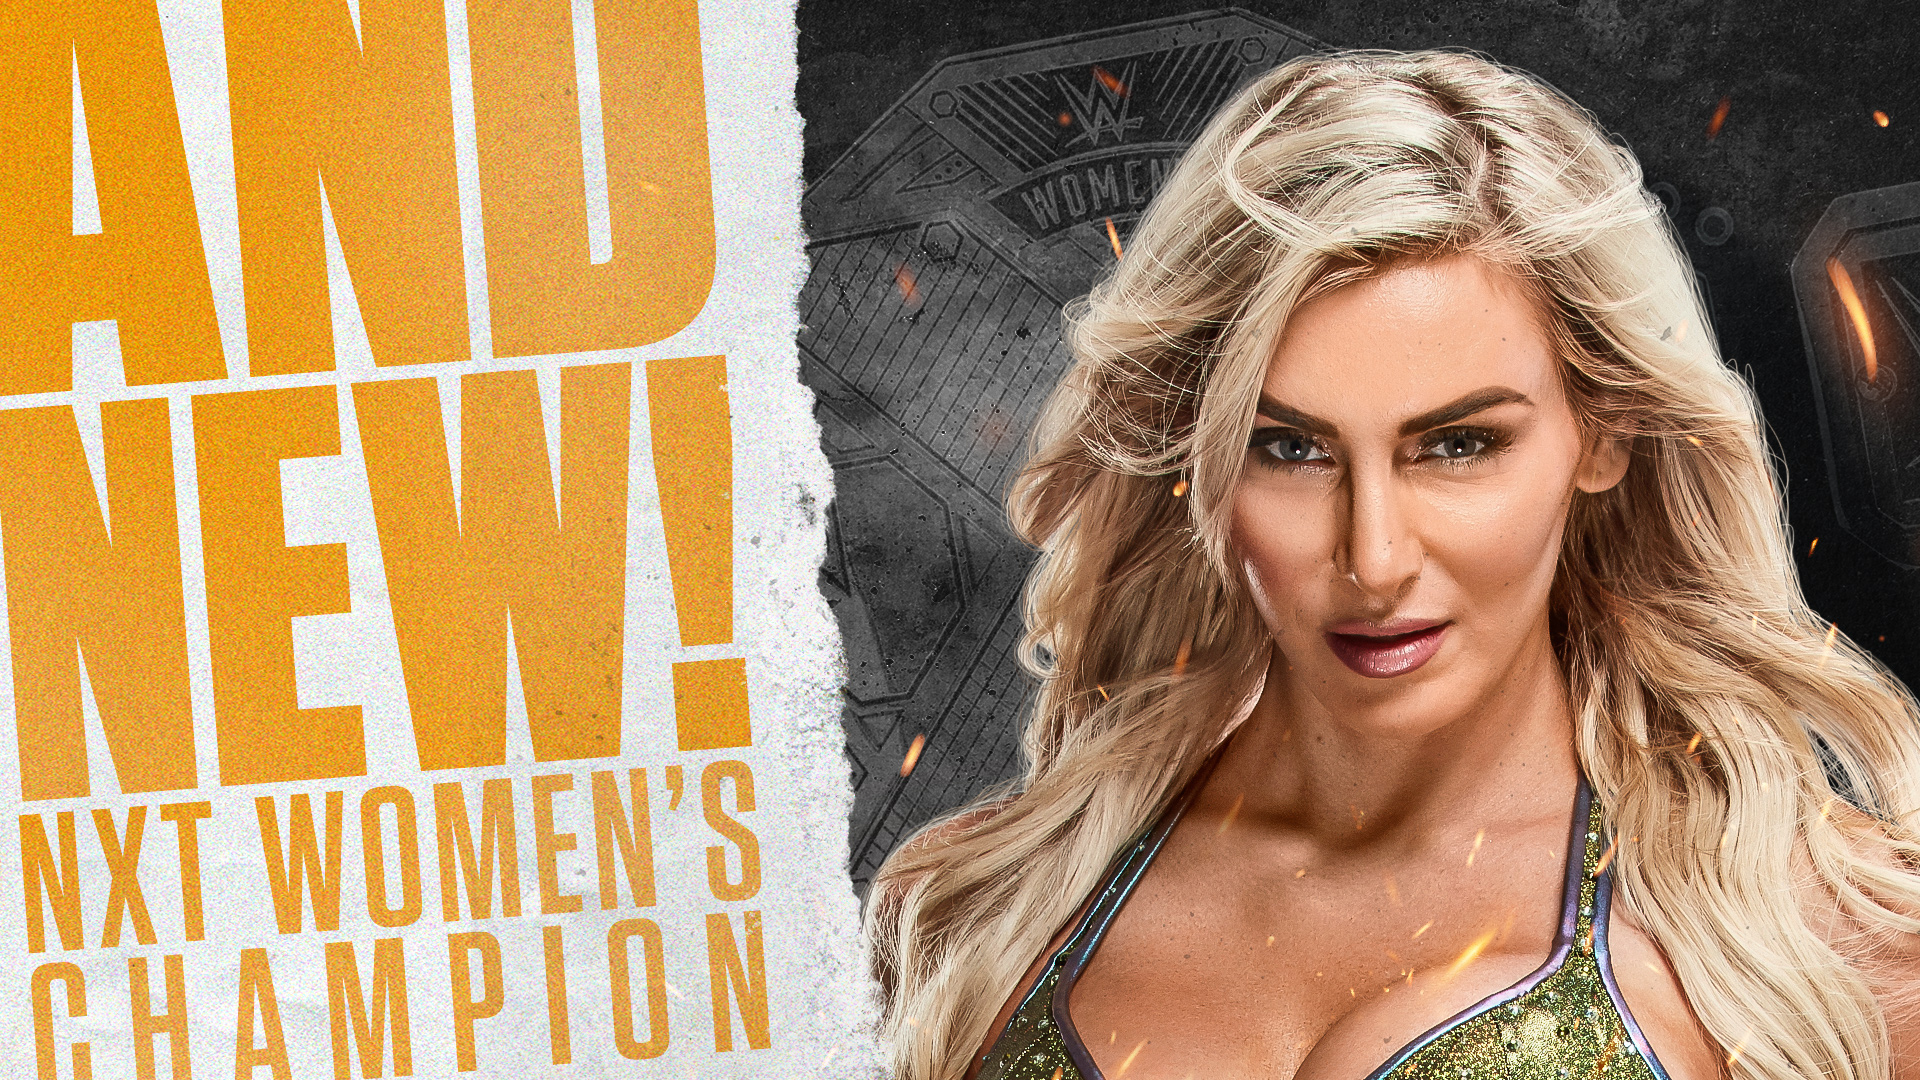 Drew McIntyre And Charlotte Flair Become New Champions At WWE Wrestlemania 3